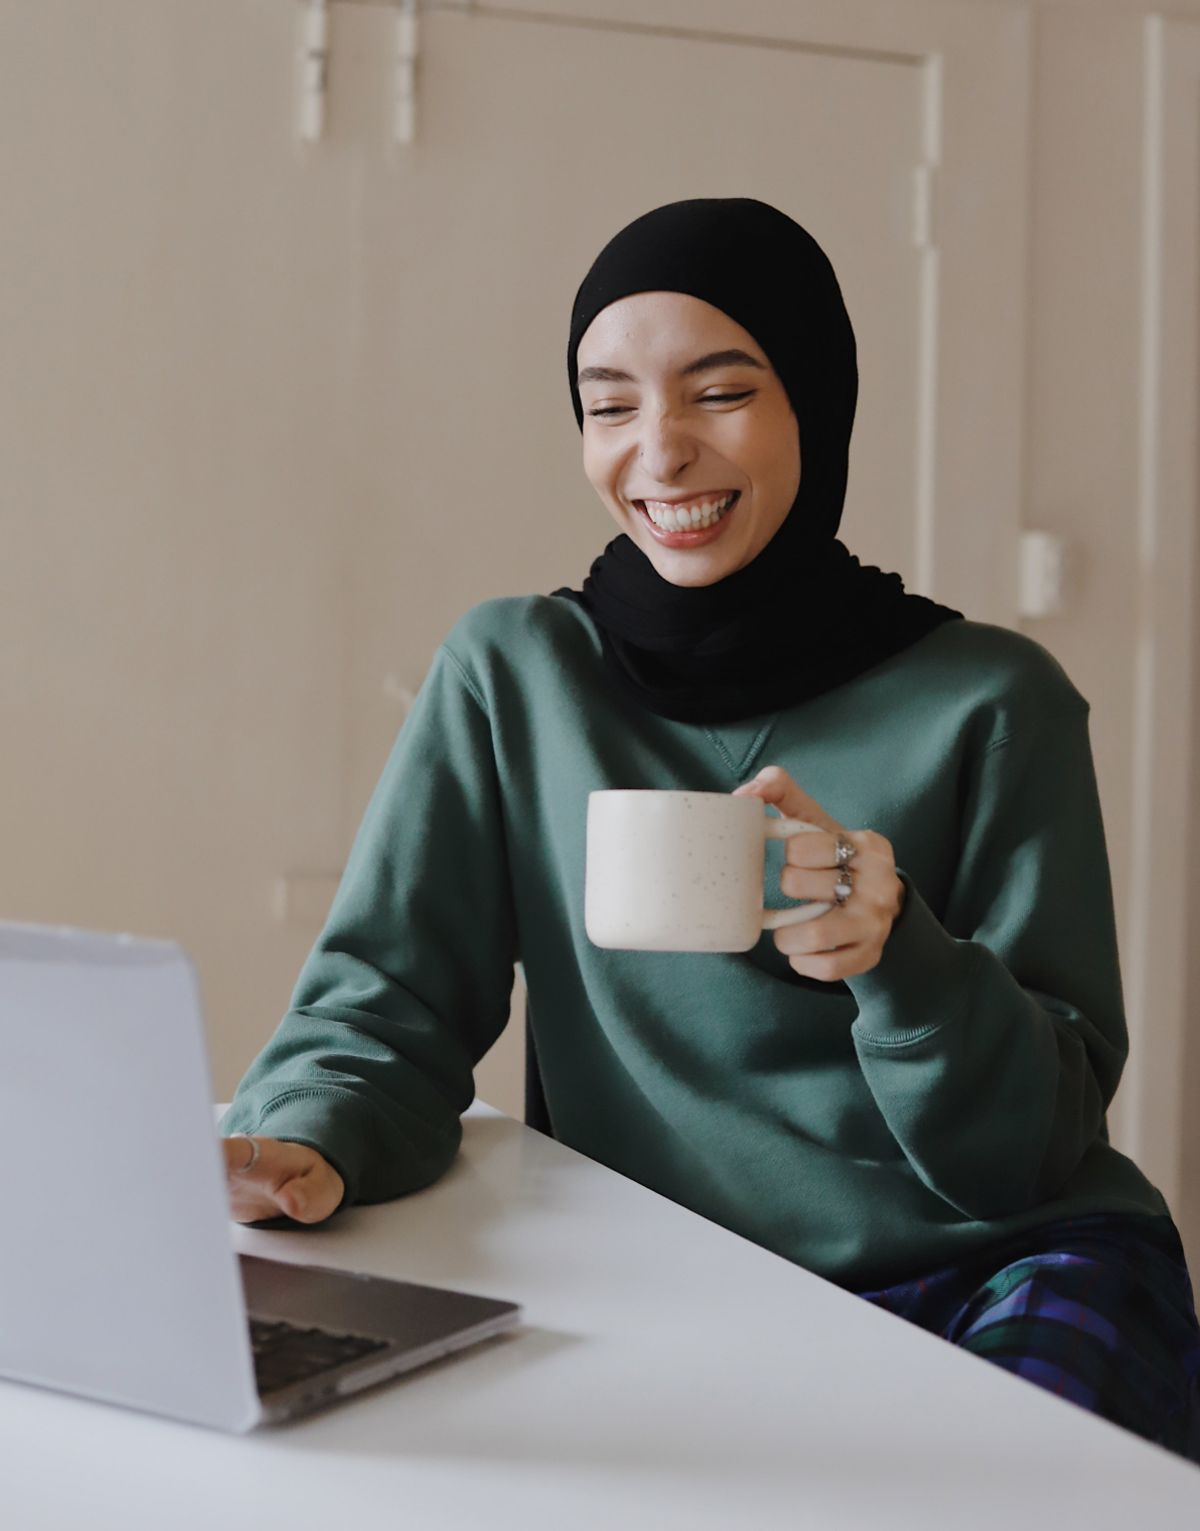 A laughing woman sits in front of her computer